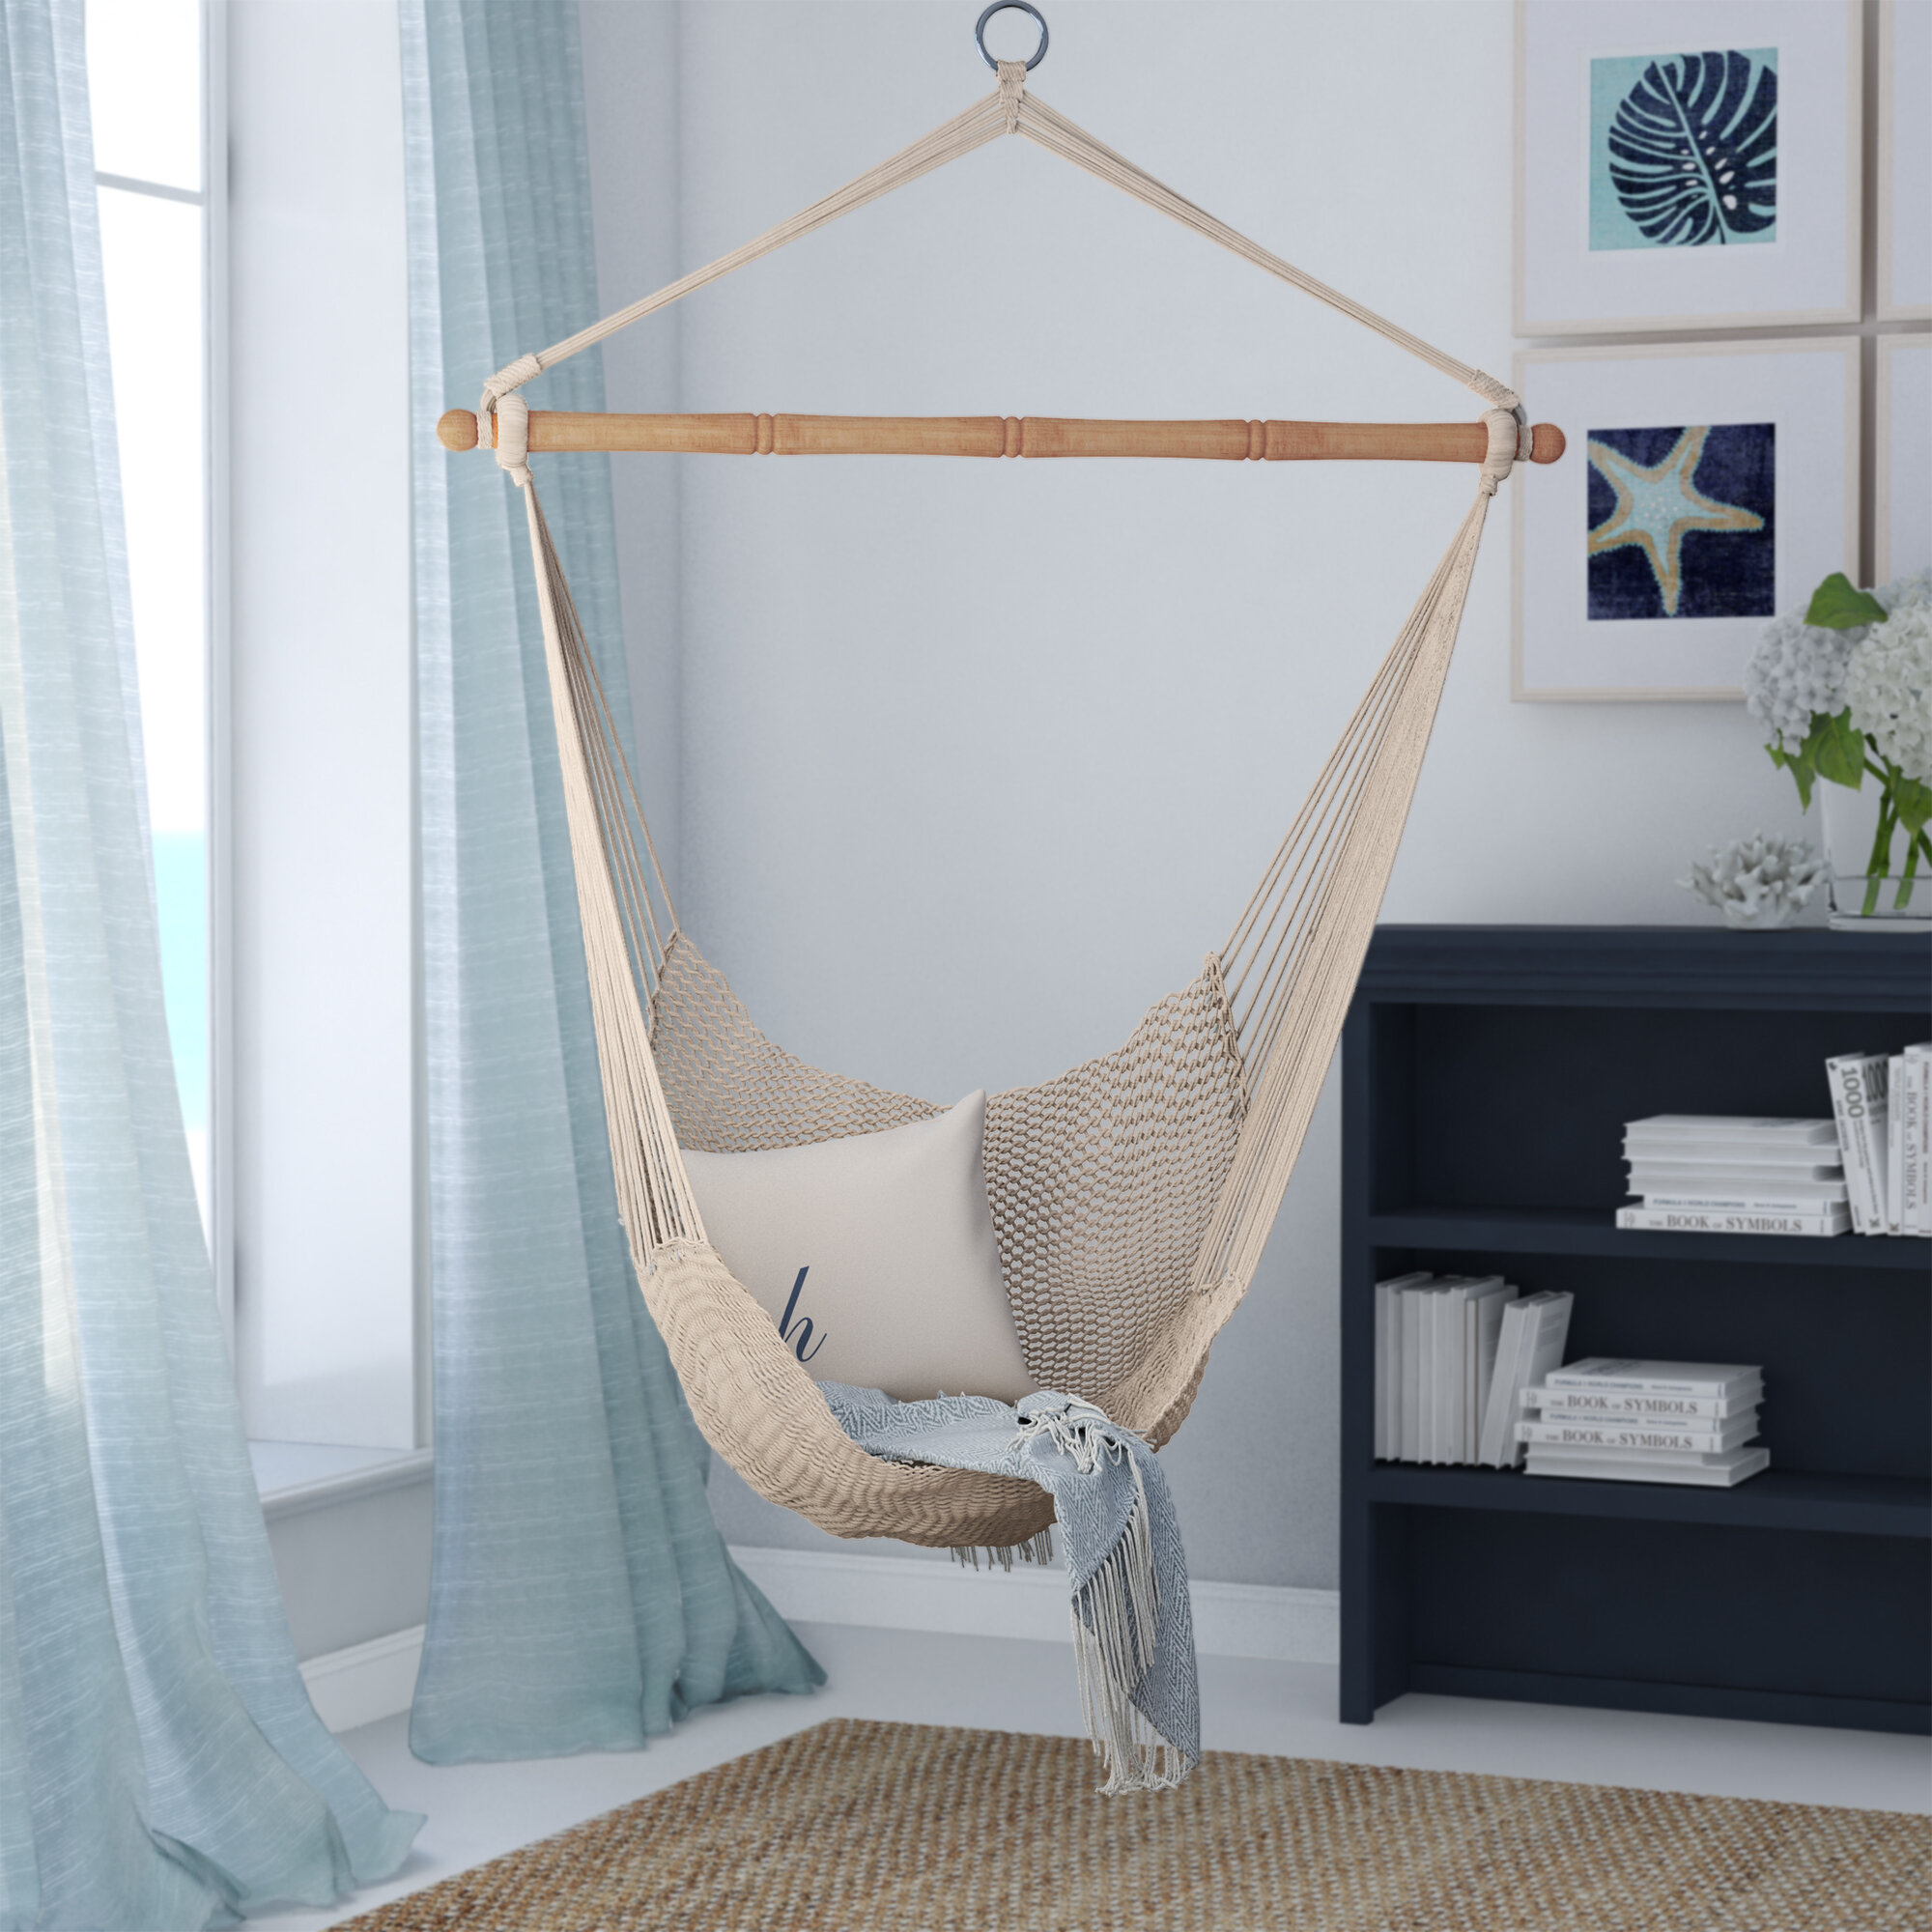 Beachcrest Home Crowell Rope Cotton Chair Hammock U0026 Reviews | Wayfair